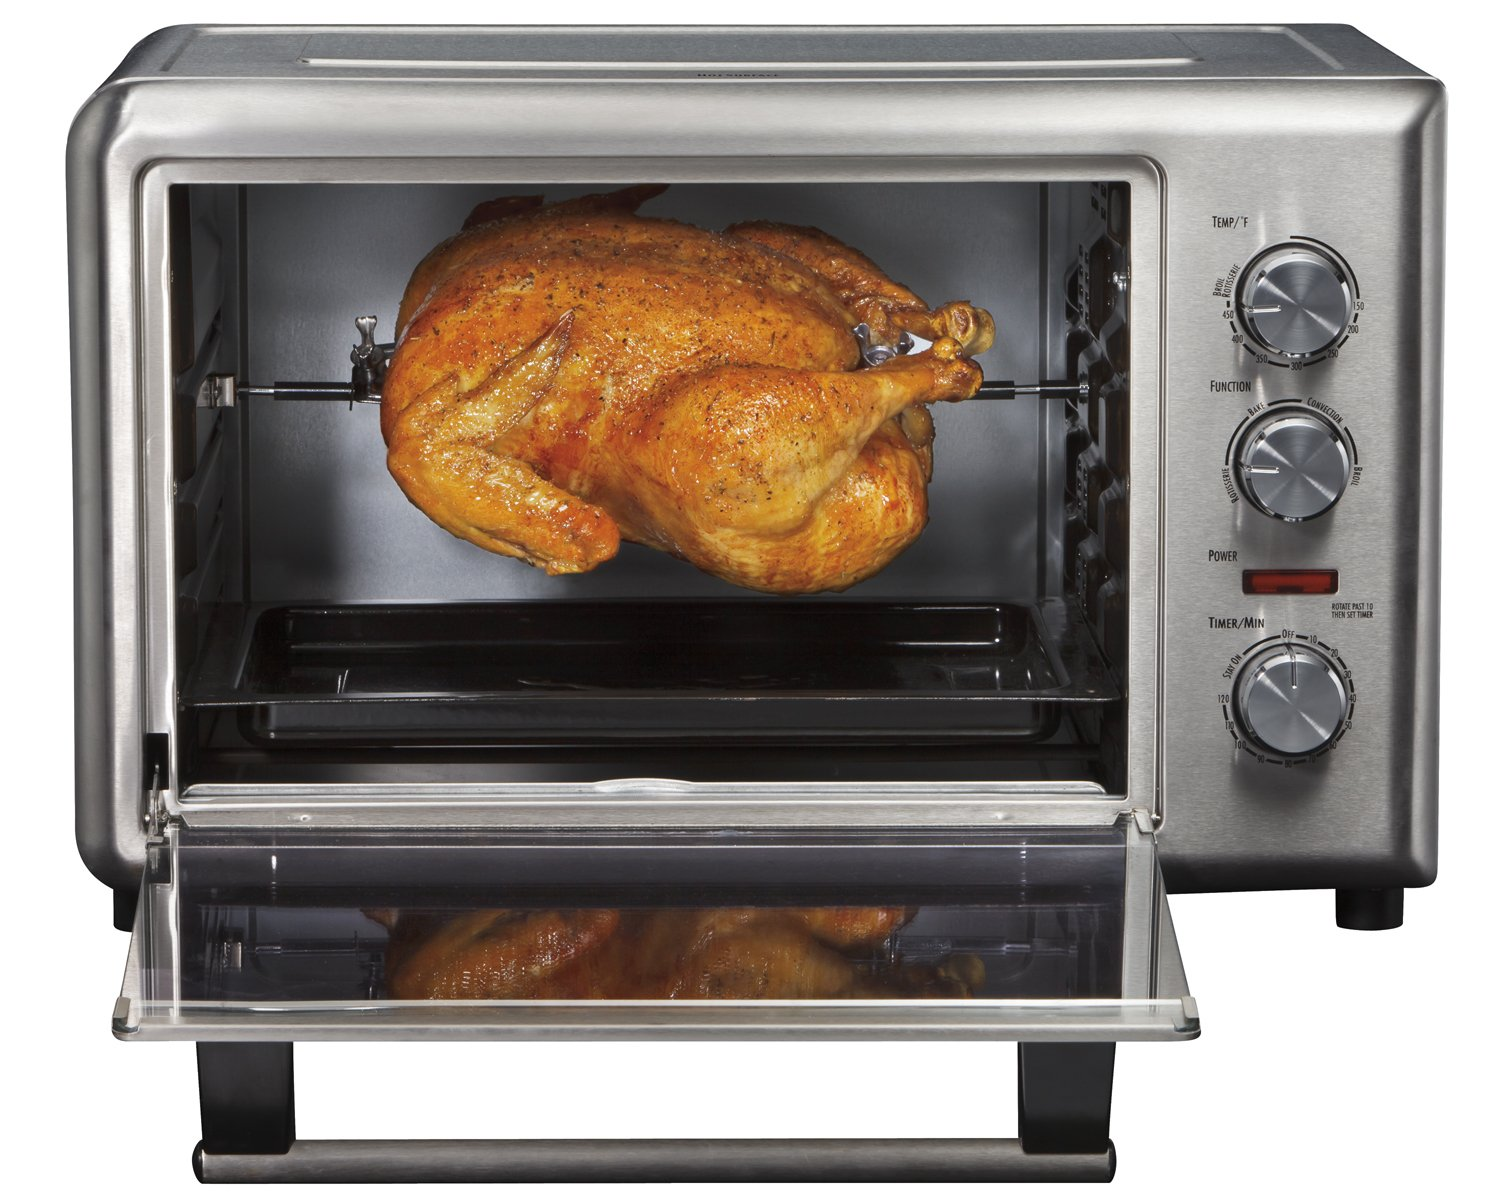 Countertop Convection Oven Chicken : ... large Countertop Oven Toaster Rotisserie Pizza Chicken Bake eBay